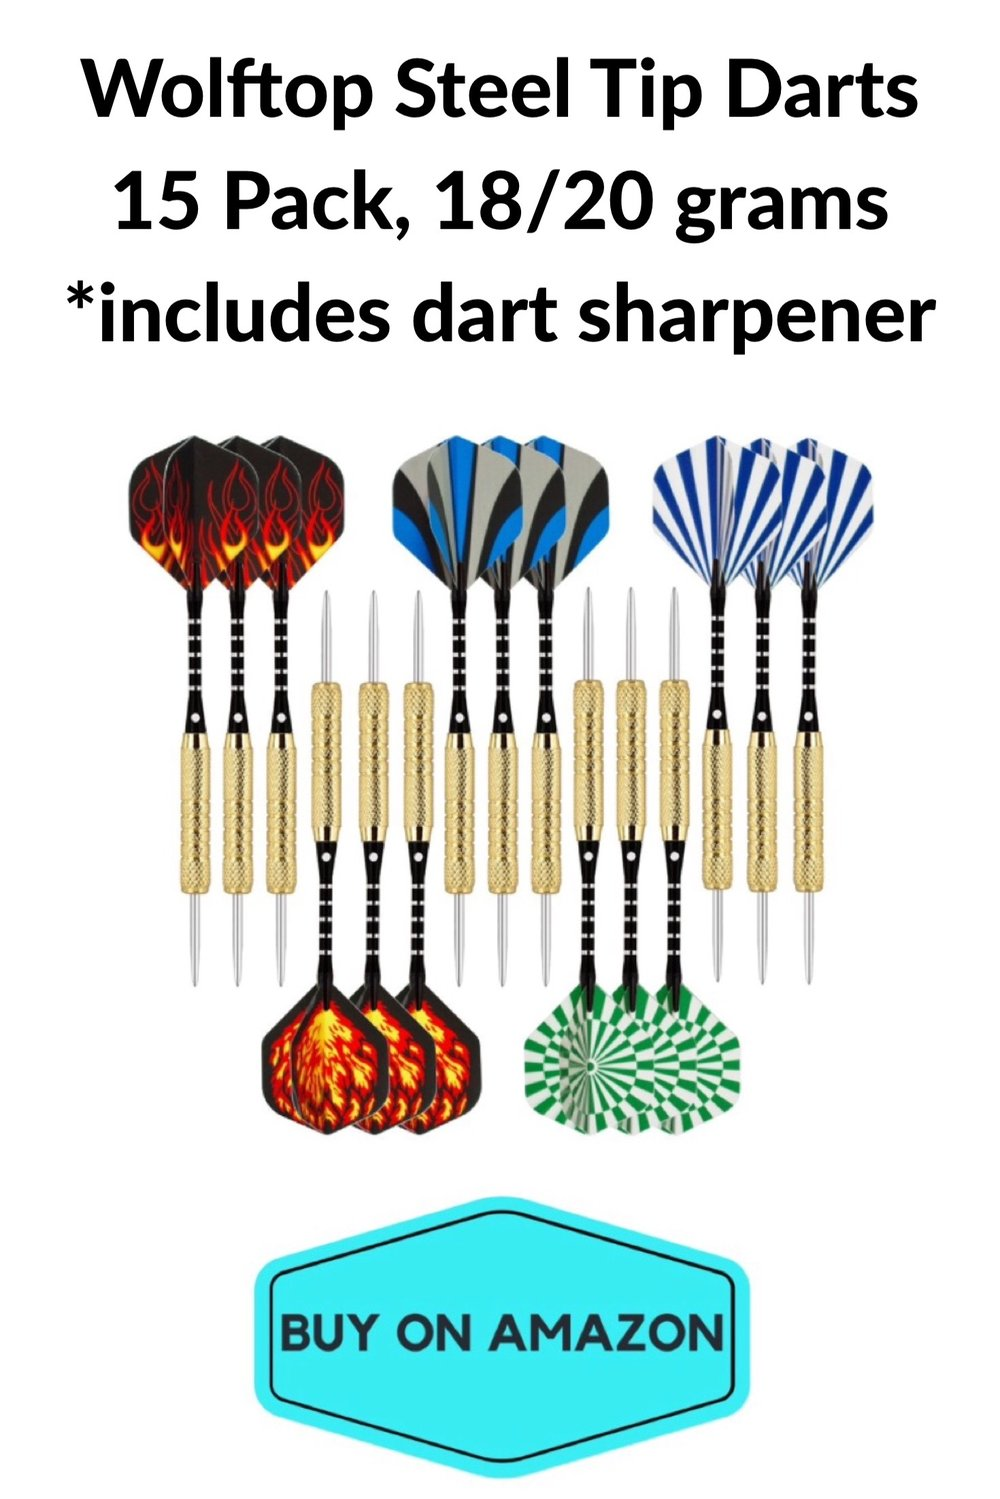 Wolftop Steel Tip Darts, 15-pack